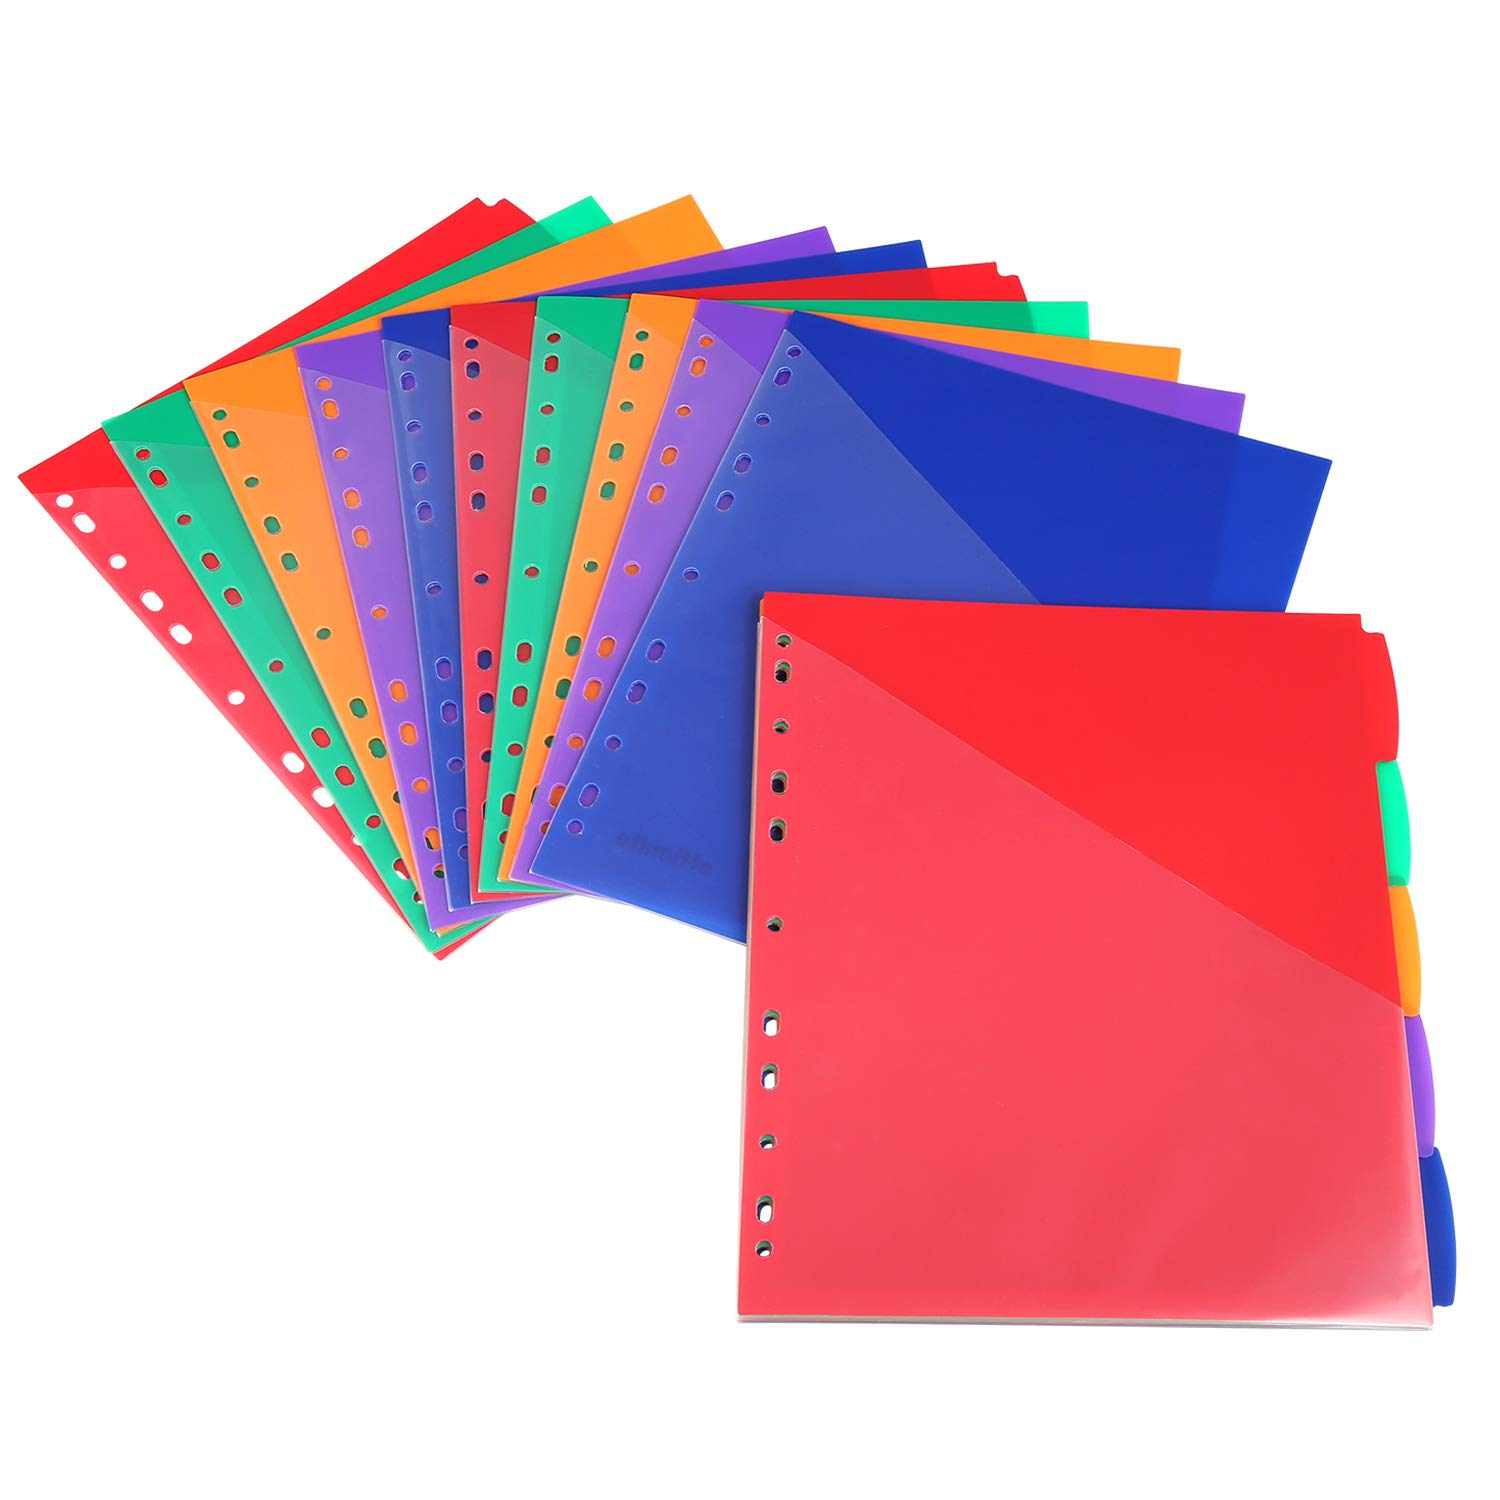 Insertable Plastic Dividers,Binders Dividers with Pockets & tabs,5-Tab Set, Multi-Color,Pack of 3 …